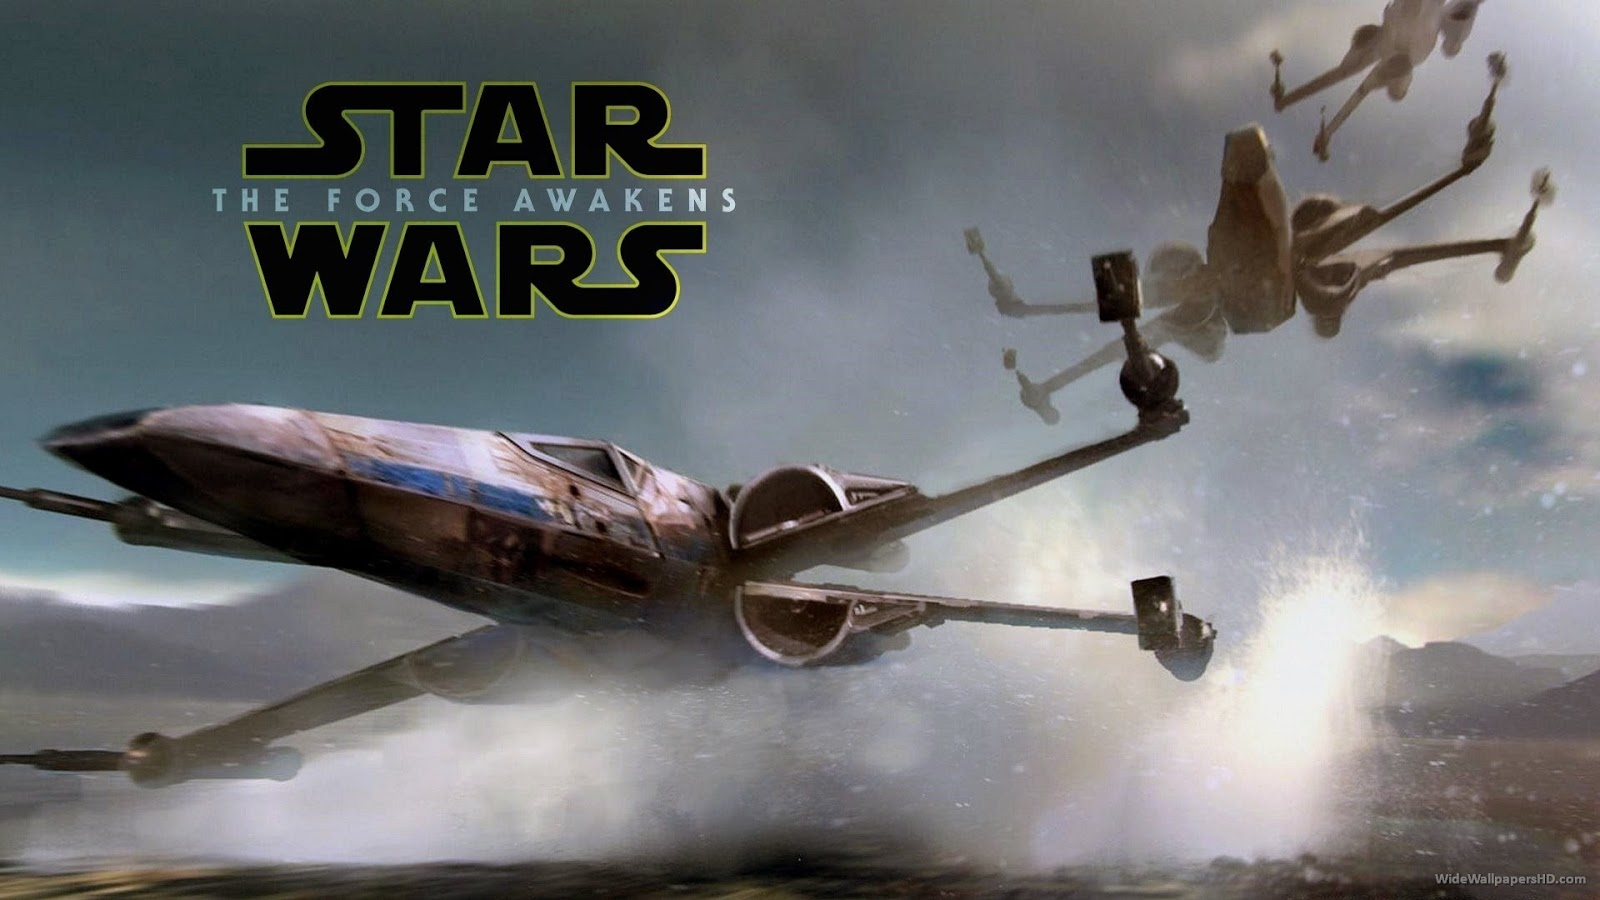 The Force awakens wallpaper iphone